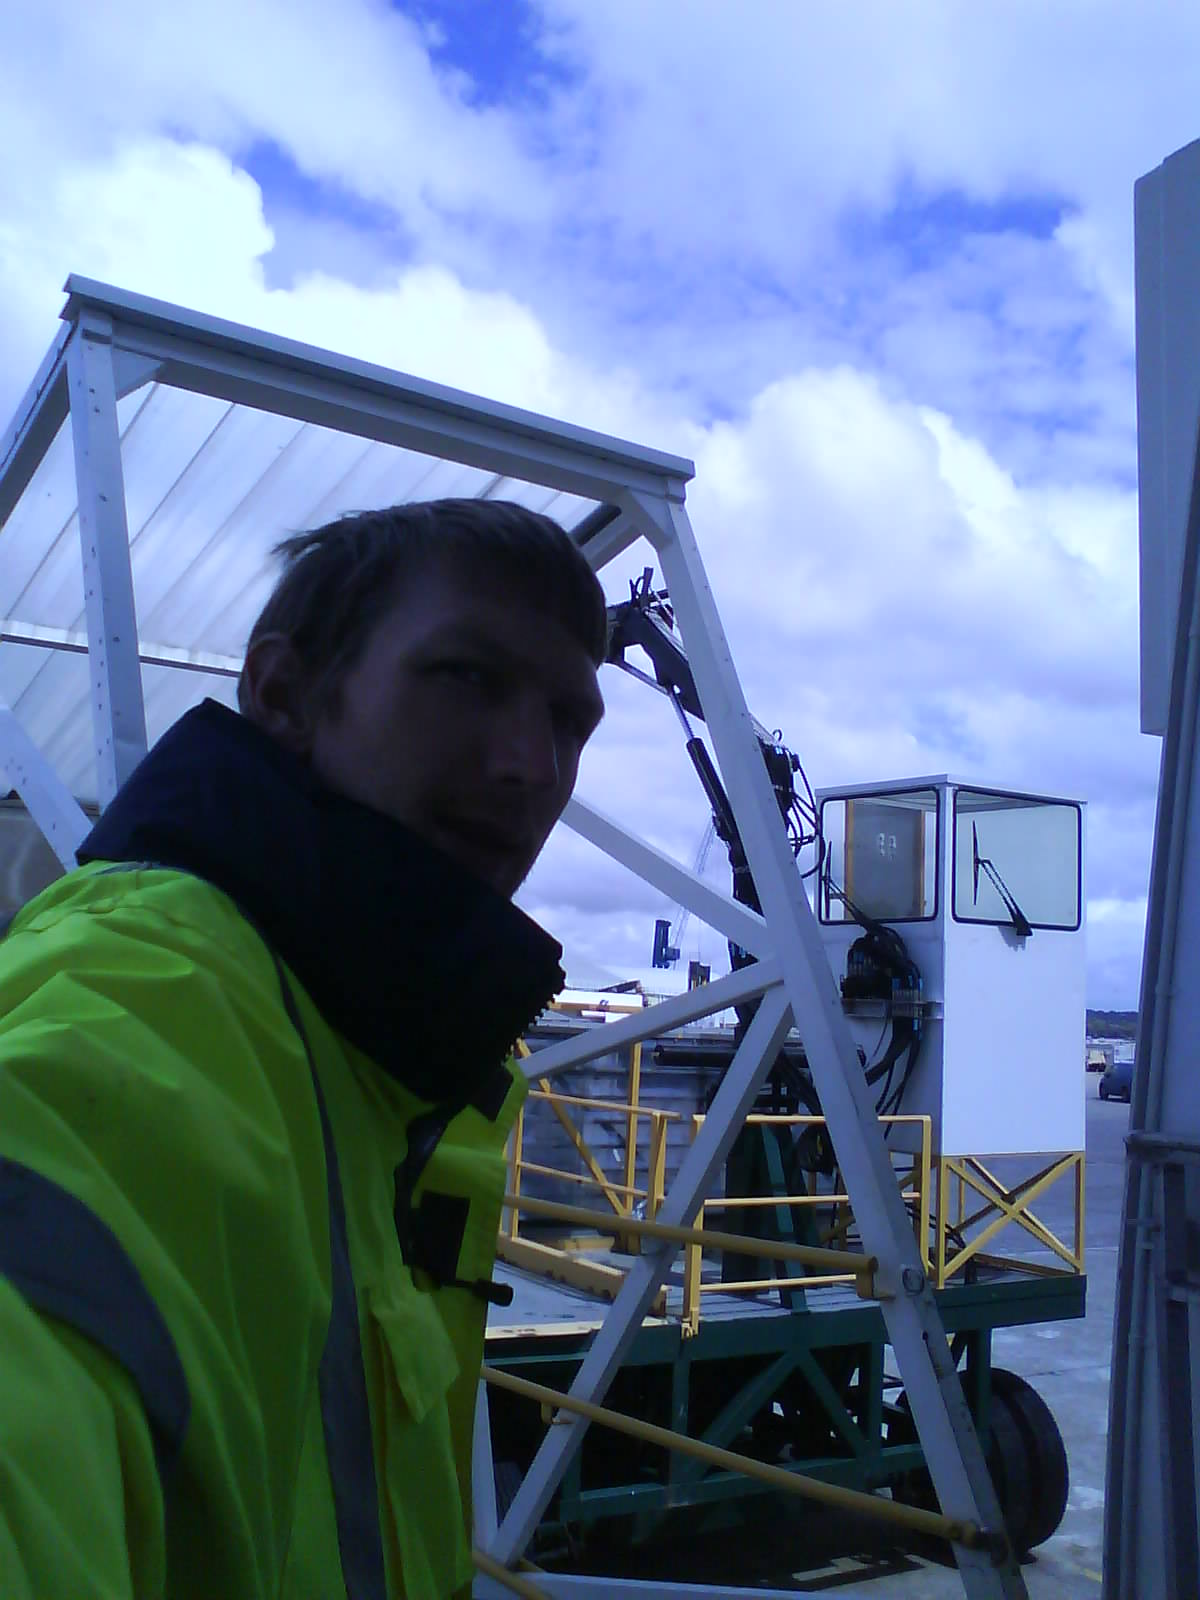 Jonny Blair working on the gangway on cross channel ferries in 2009